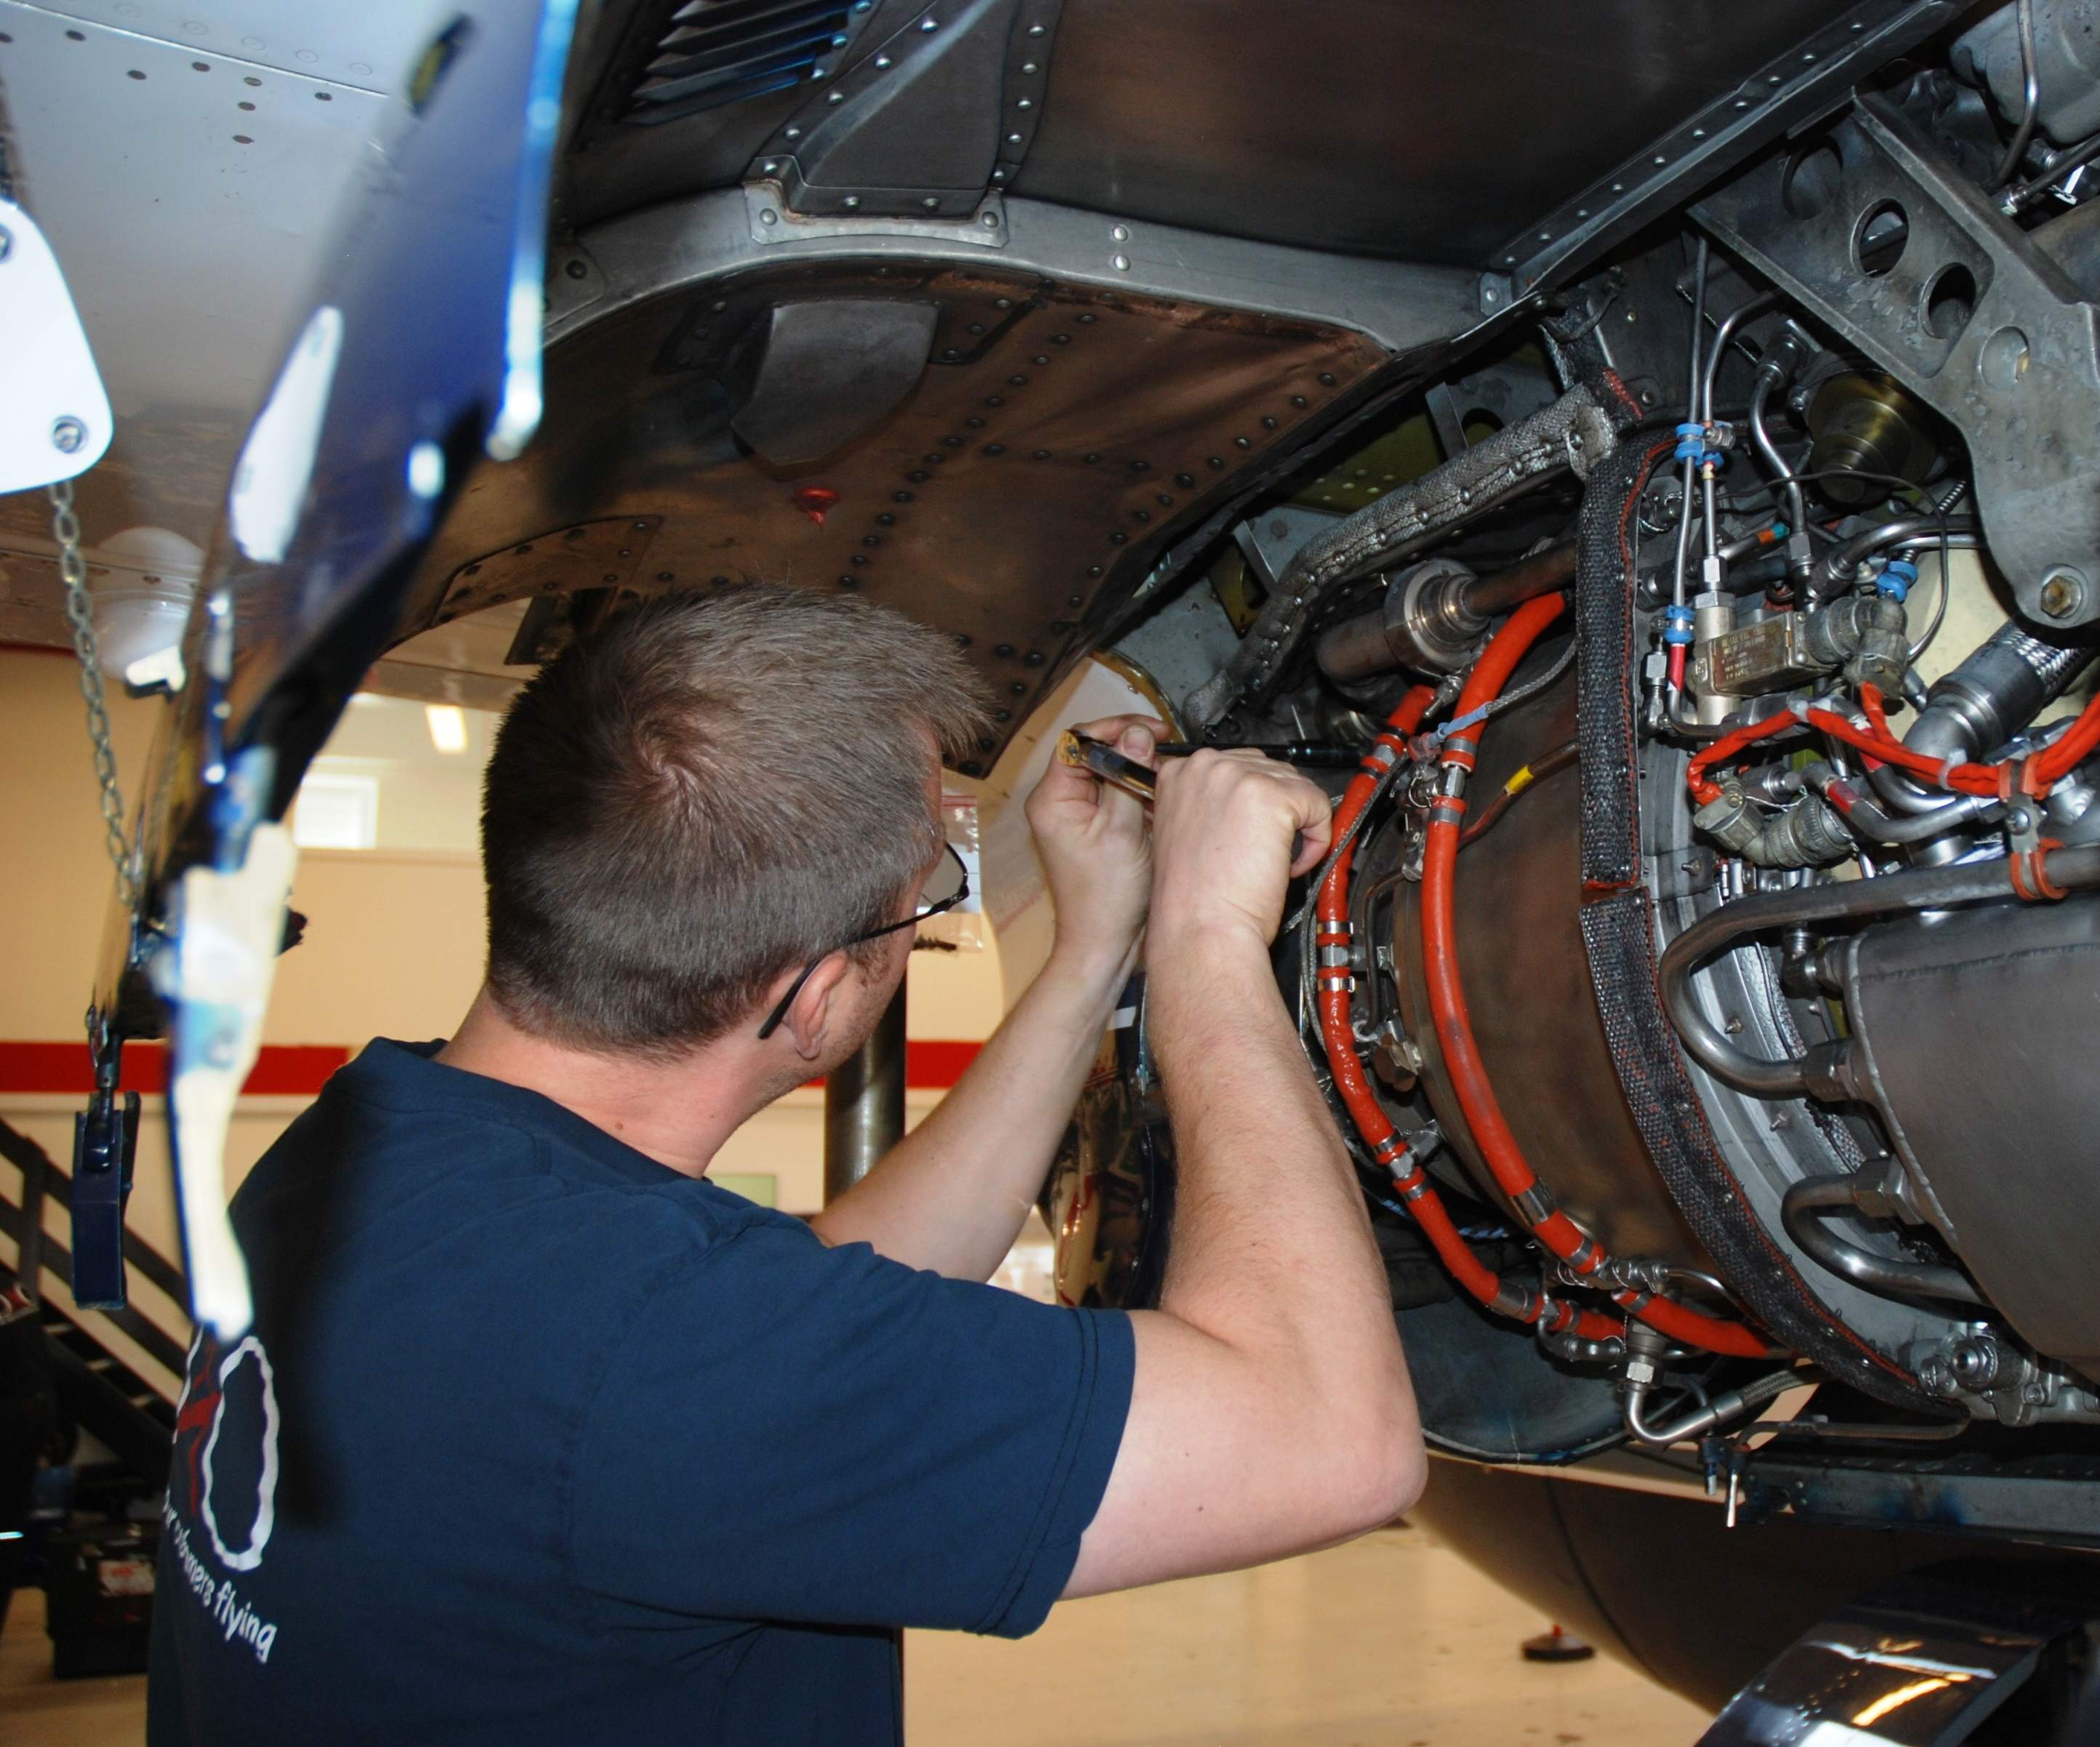 A man fixing an aircraft engine